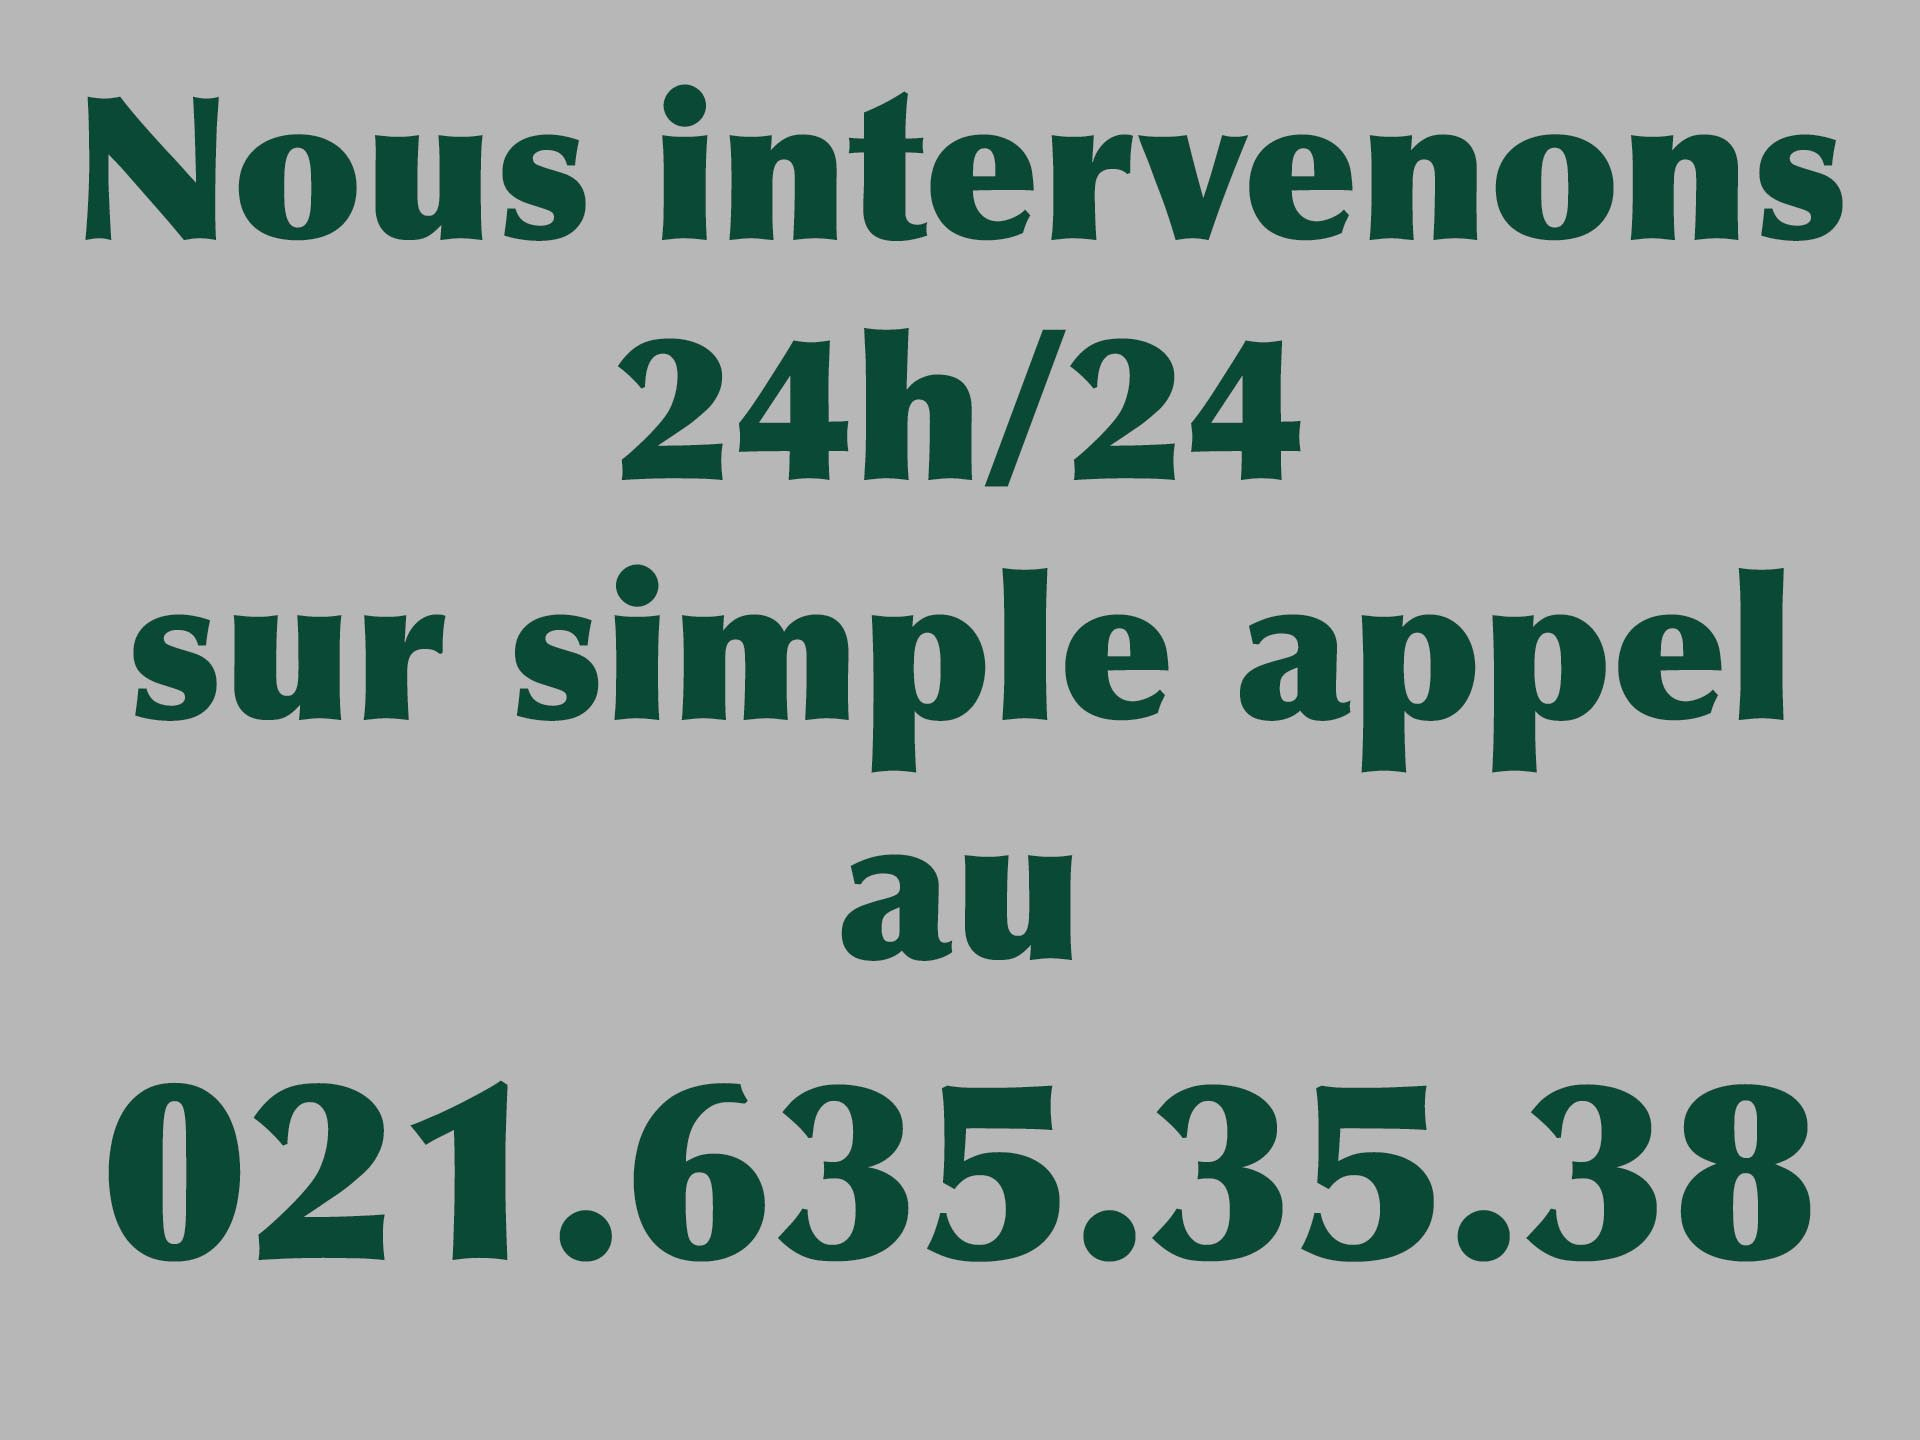 Intervention 7j/7 au 021.635.35.38